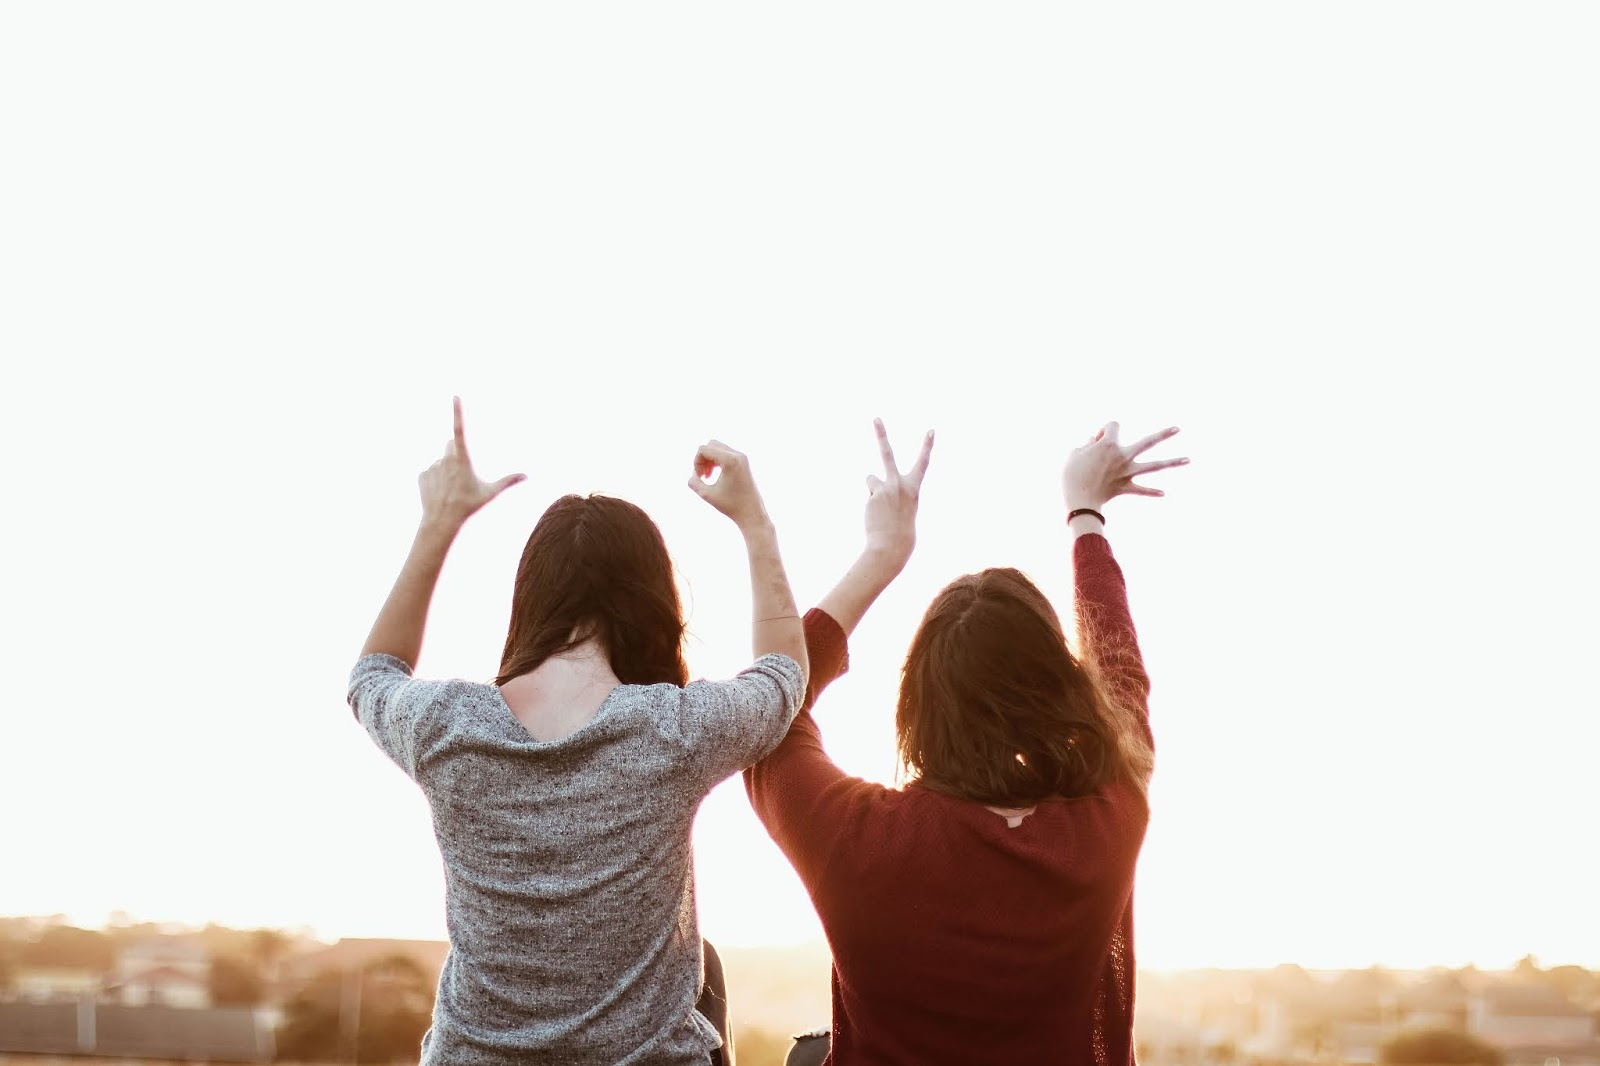 two women sitting while making love hand sign at daytime, love images